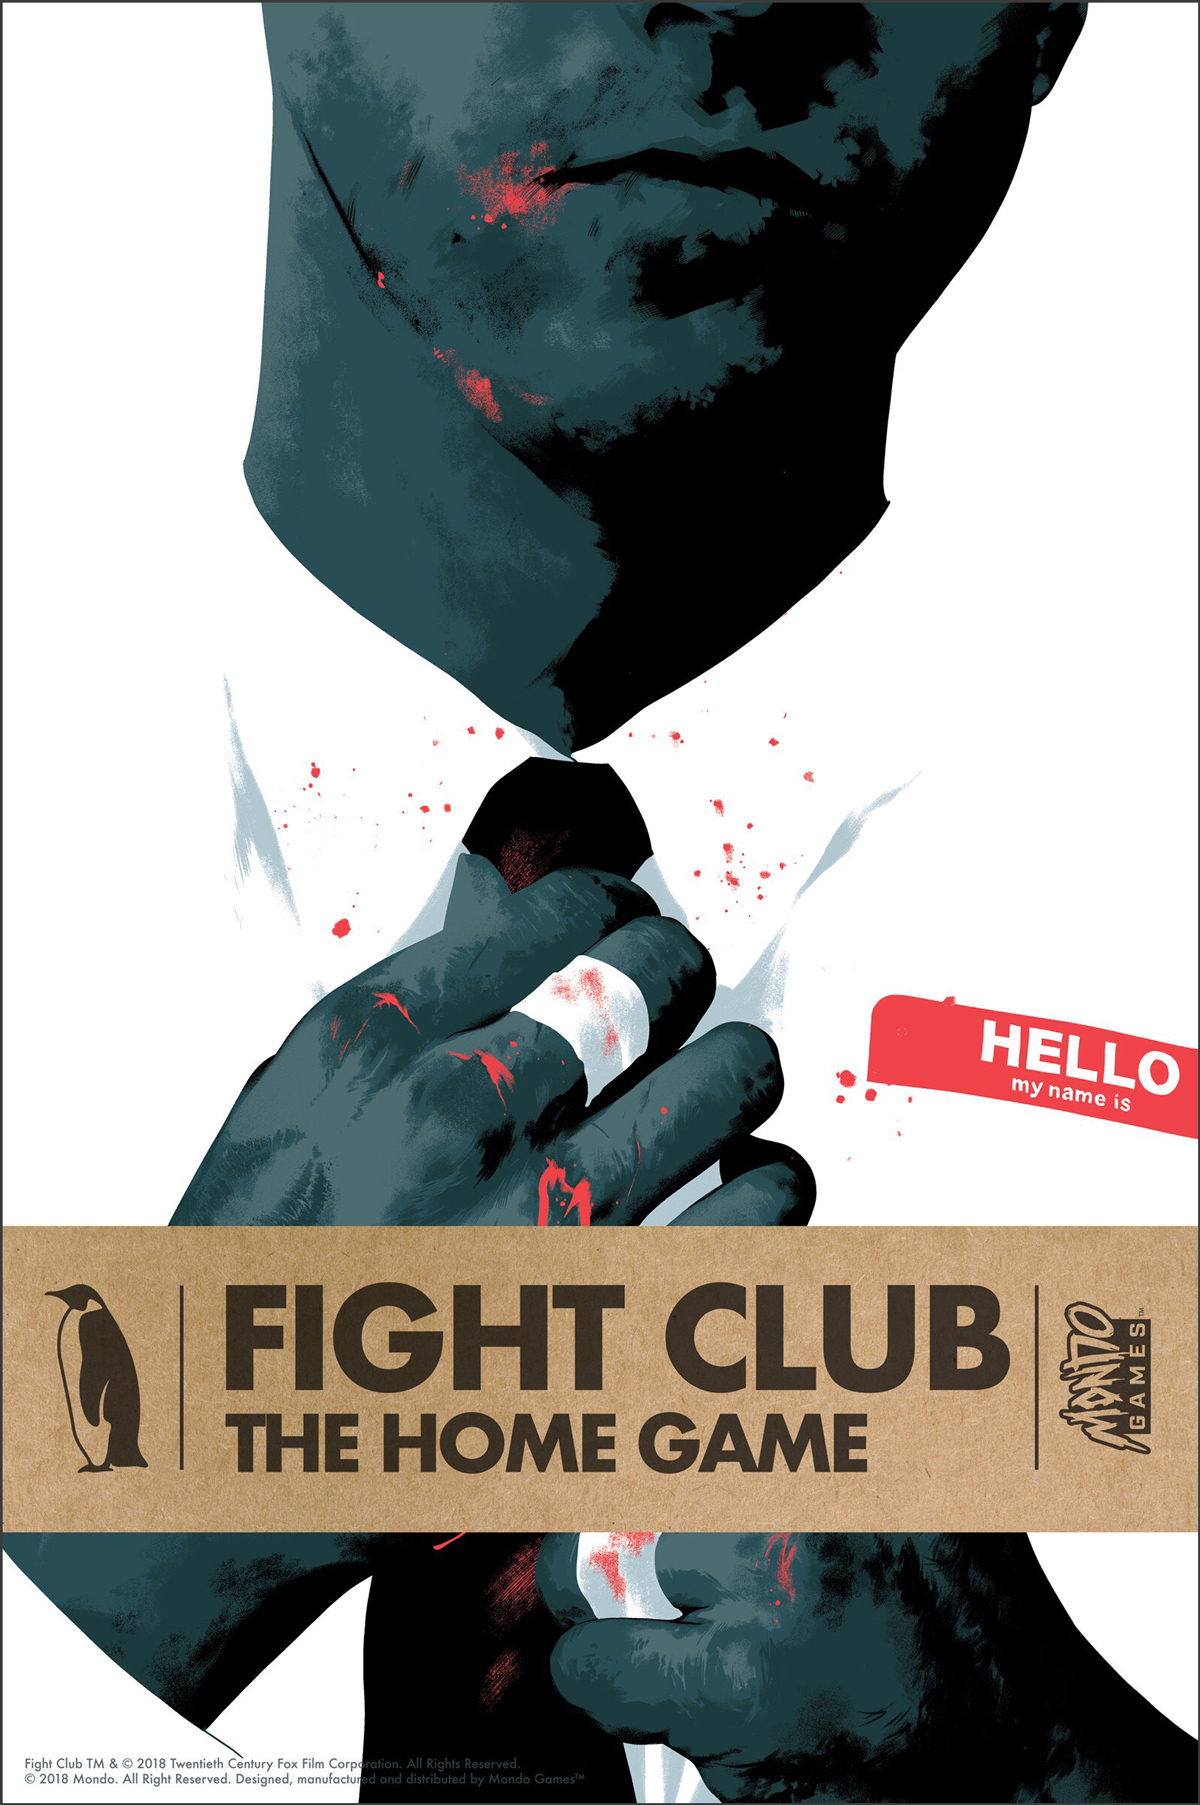 Fight Club: The Home Game